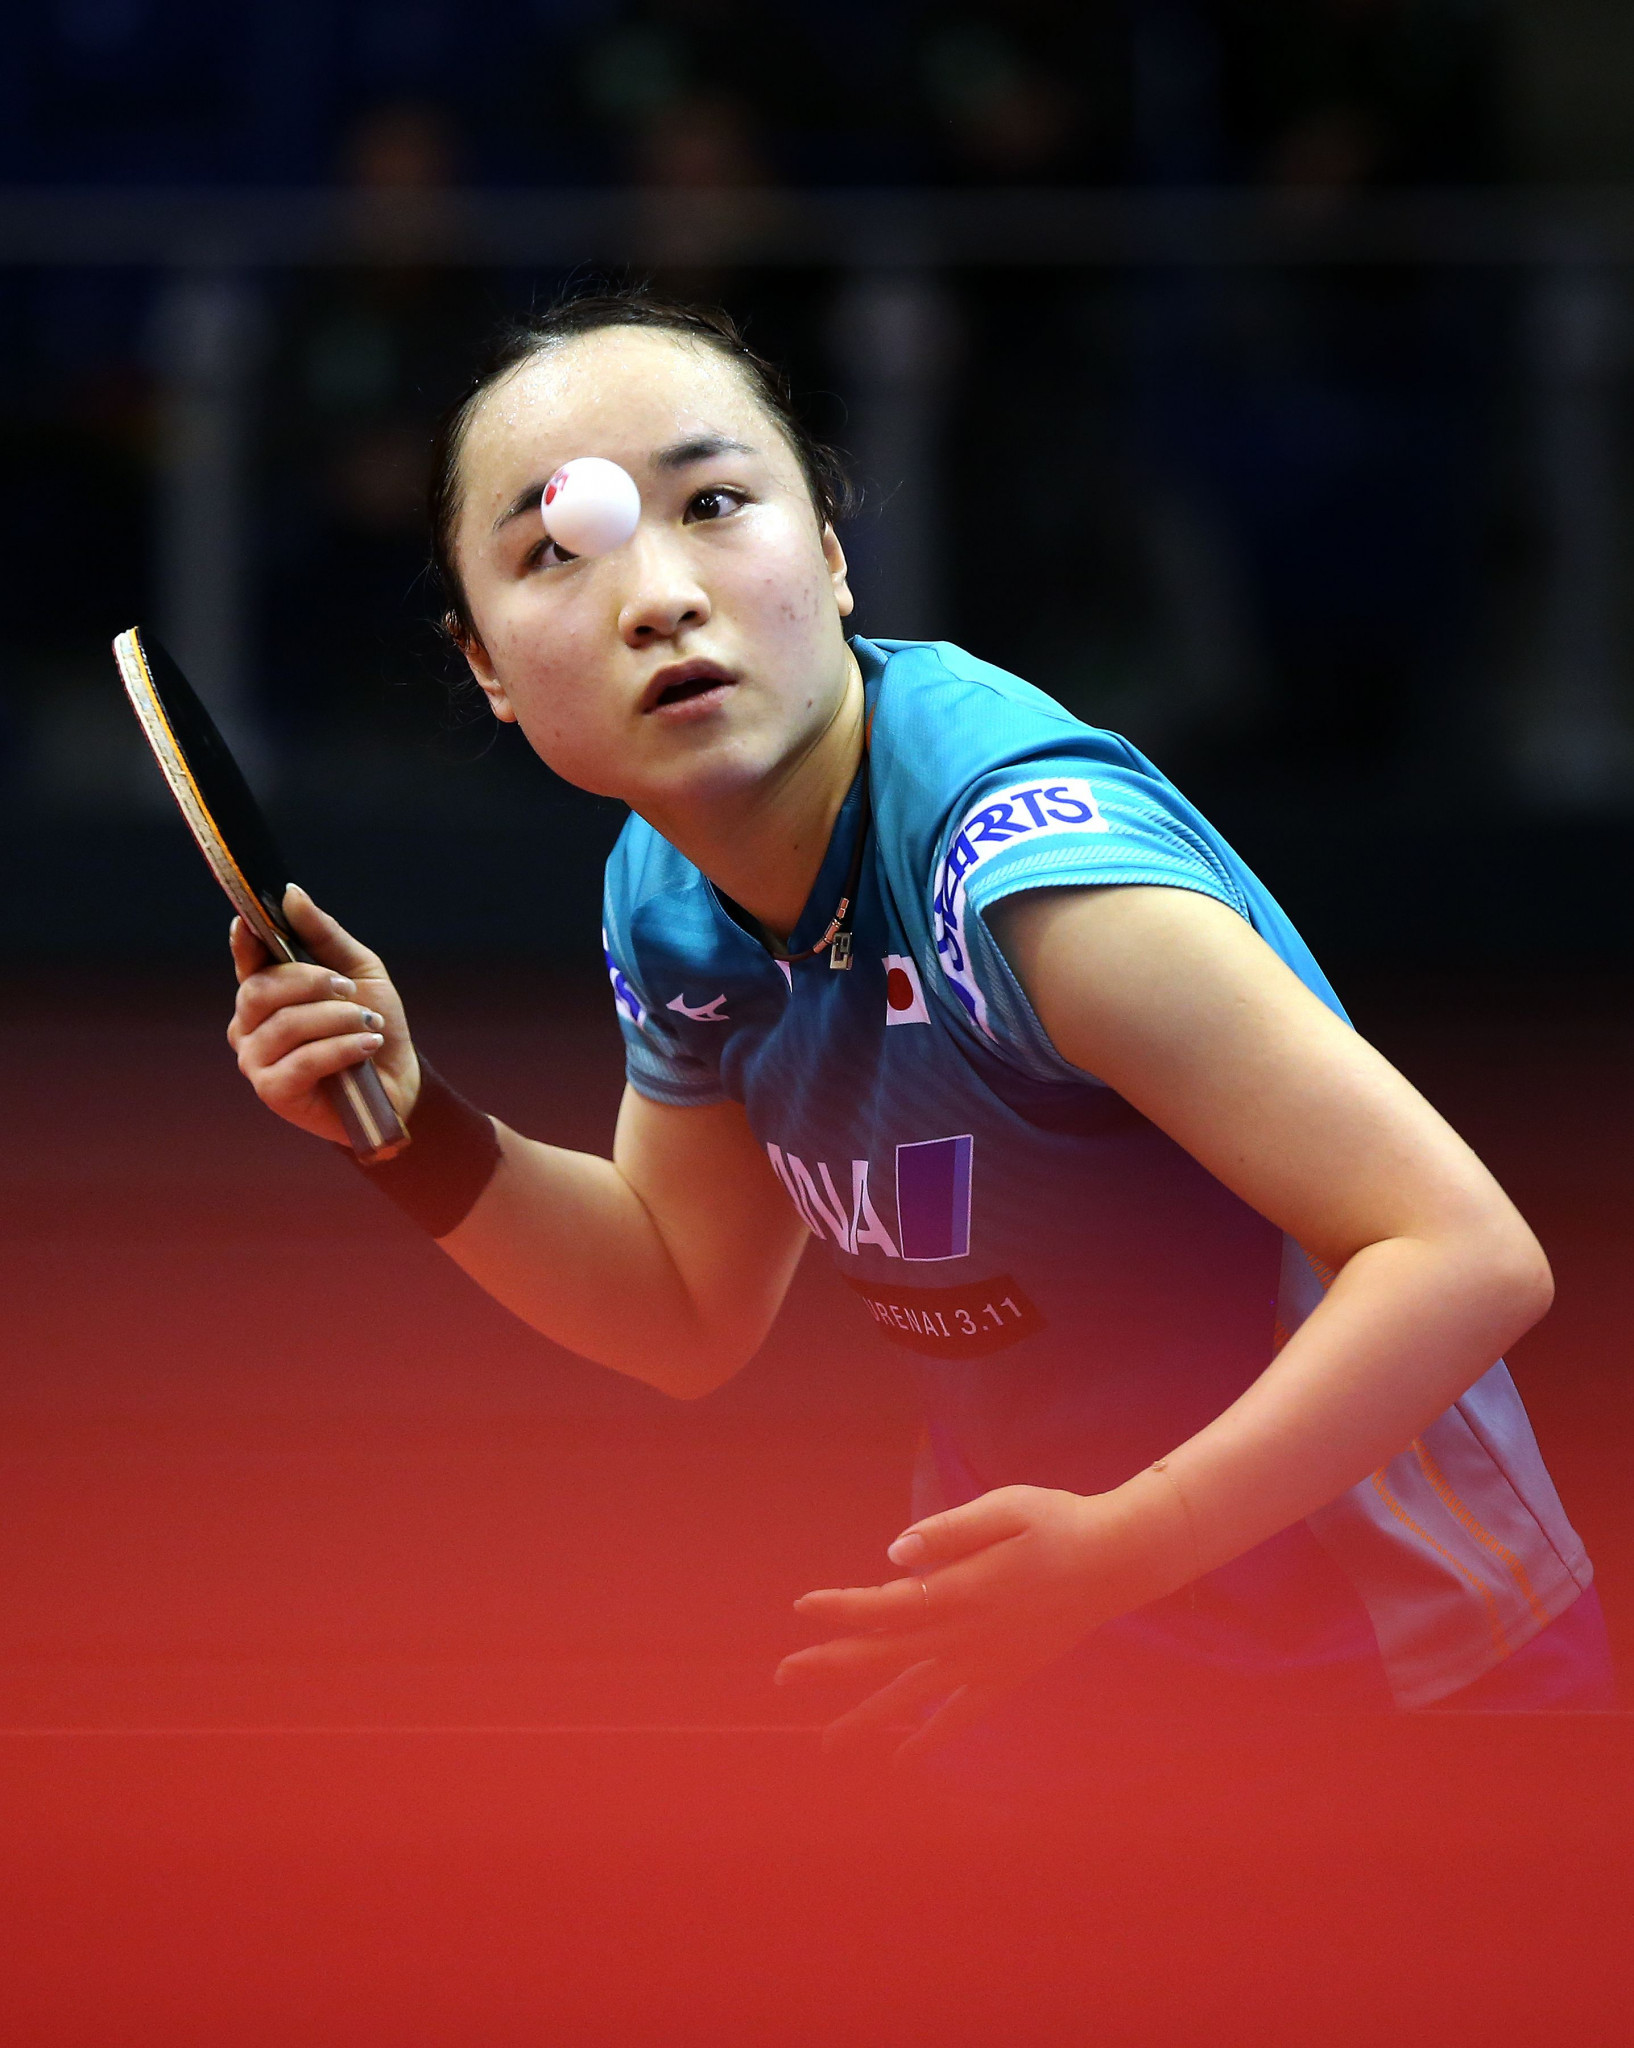 ITTF Hungarian Open titles up for grabs with Chinese absent